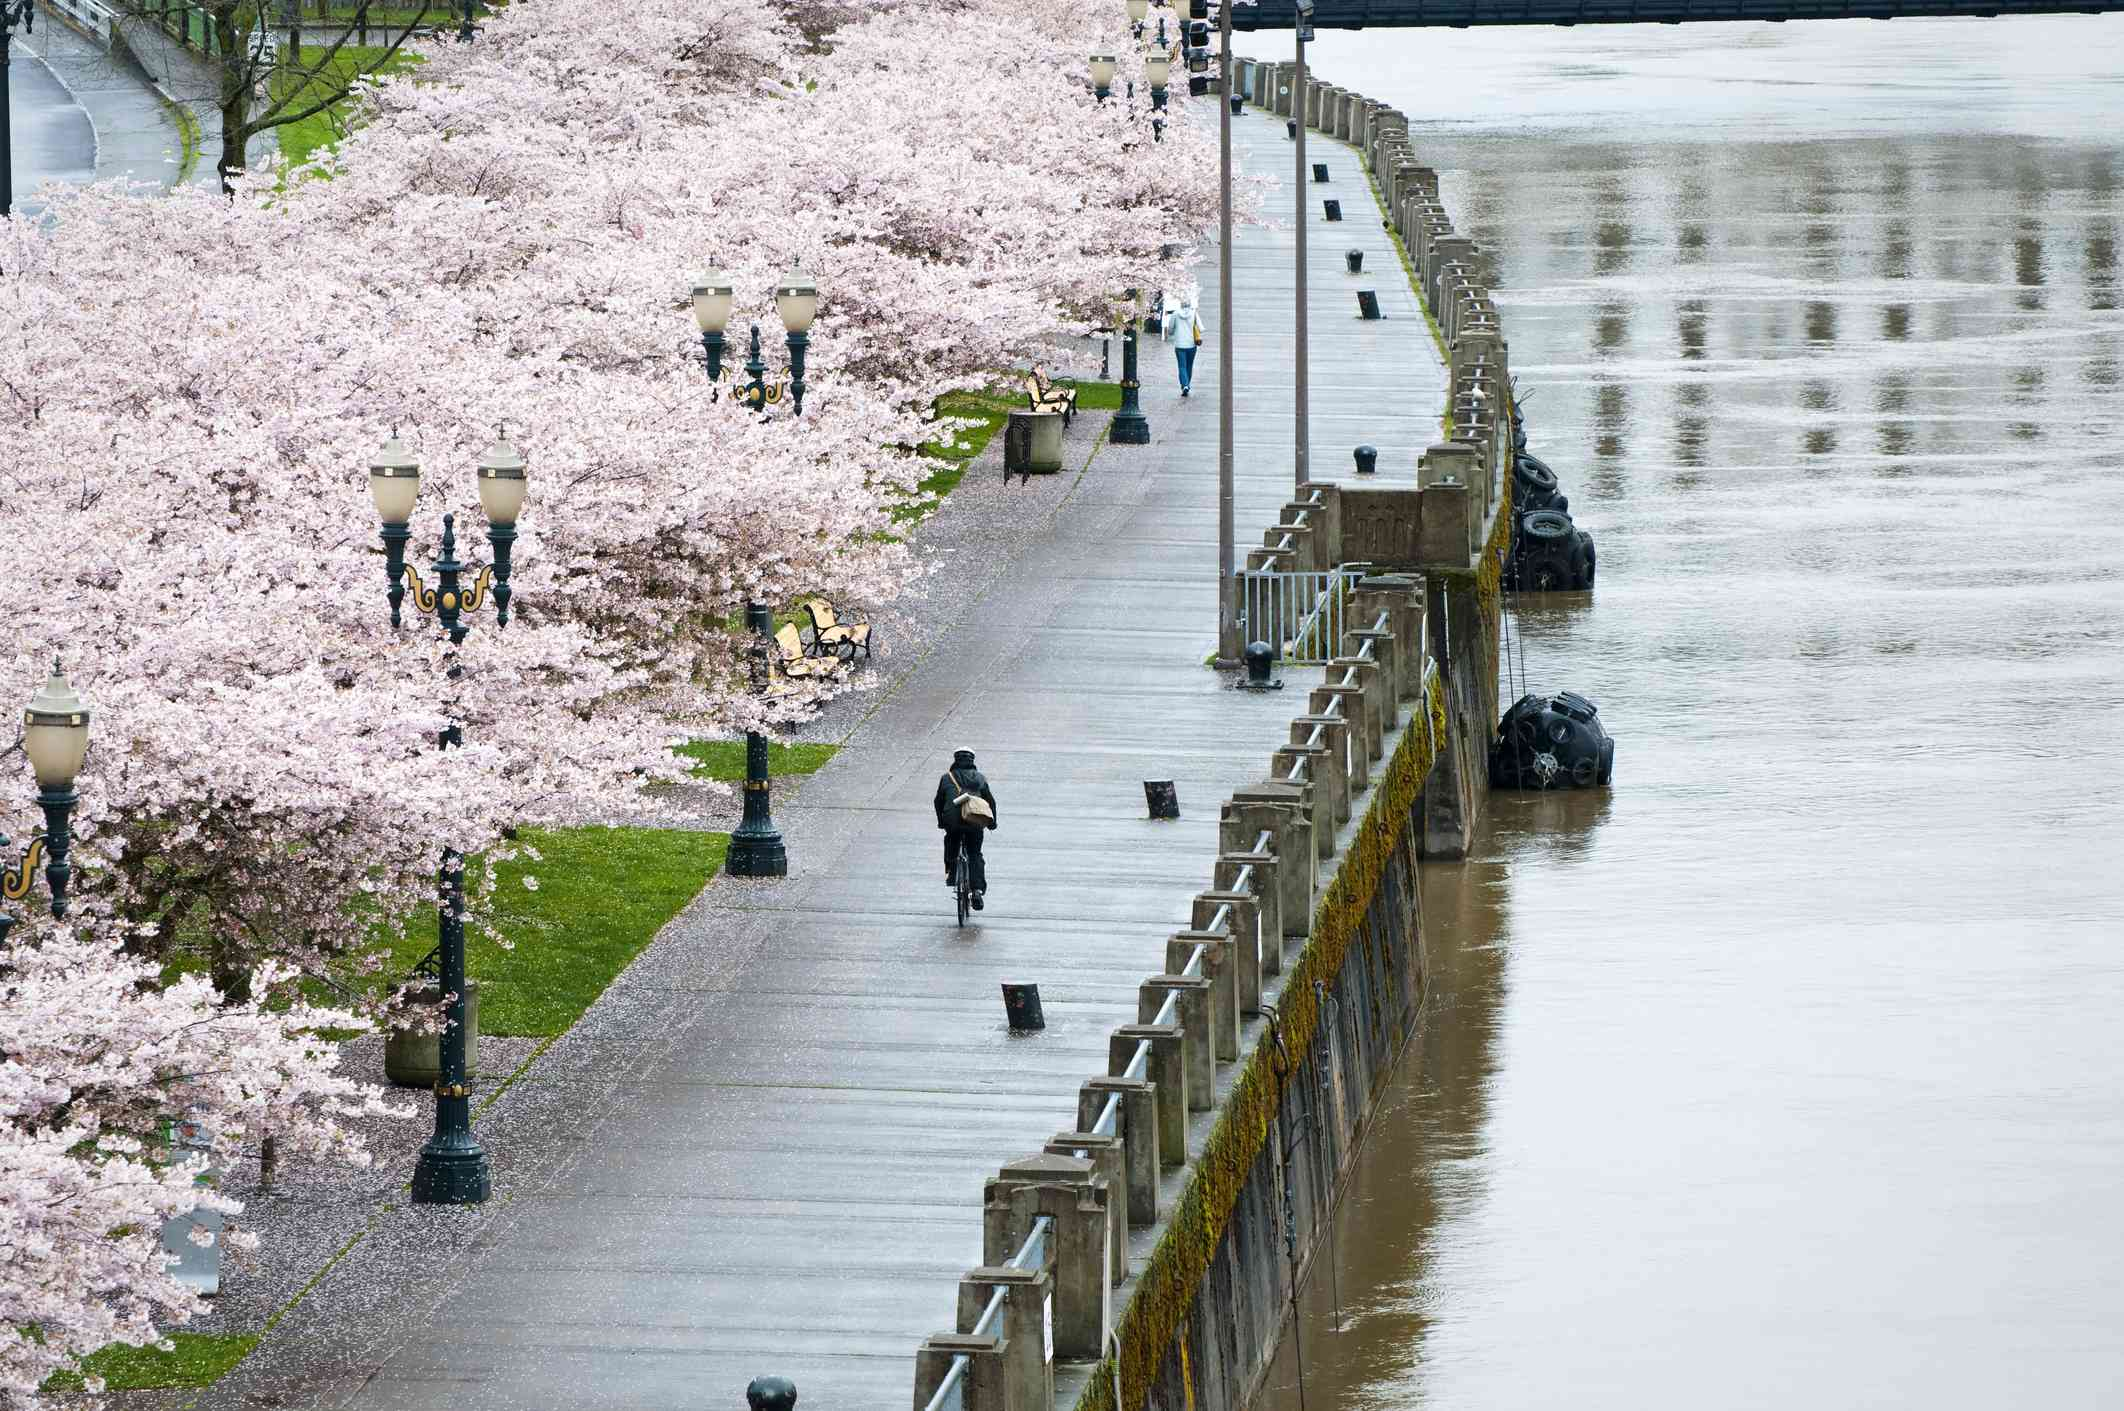 A bicyclist rides down Tom McCall Waterfront Park on a wet spring day in Portland, Oregon. Blossoming cherry trees on to the left and the Willamette River to the right.